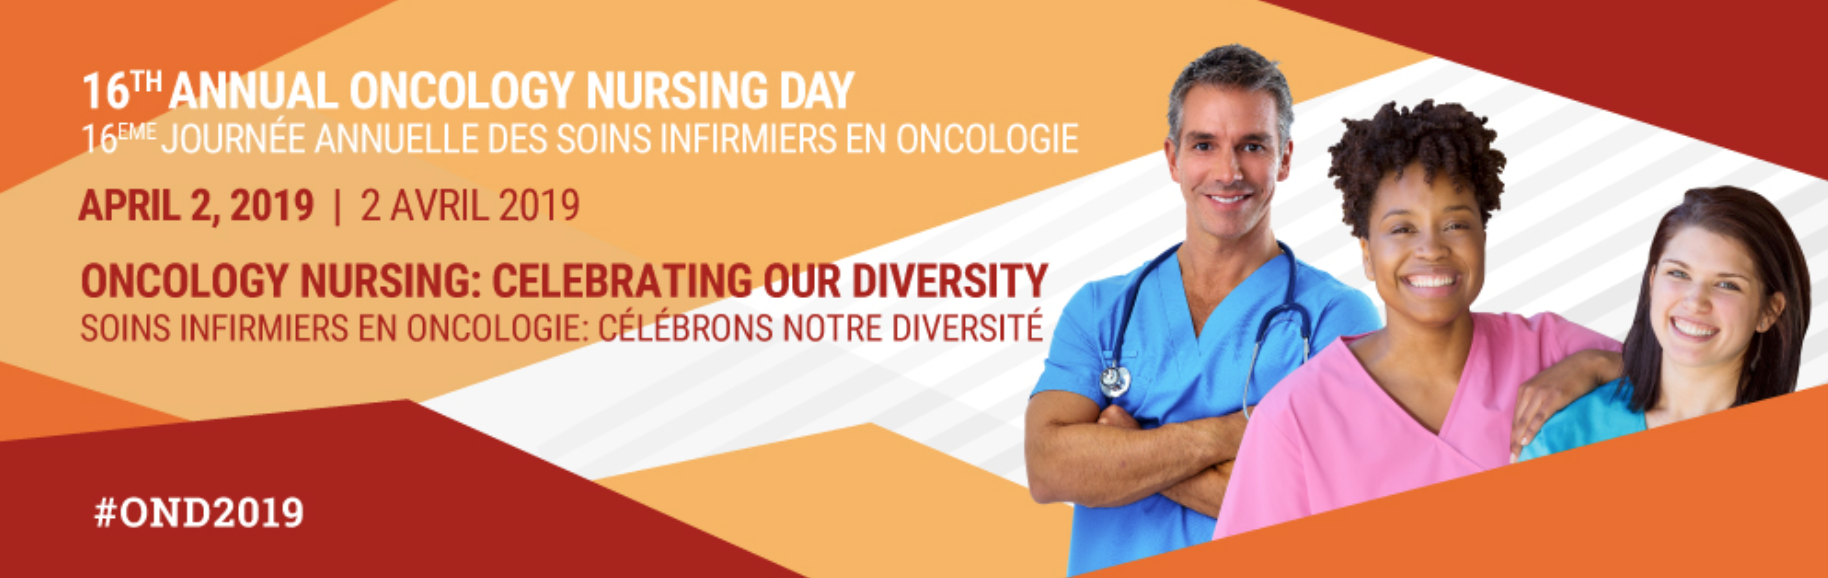 2019 16th Annual Oncology Nursing Day